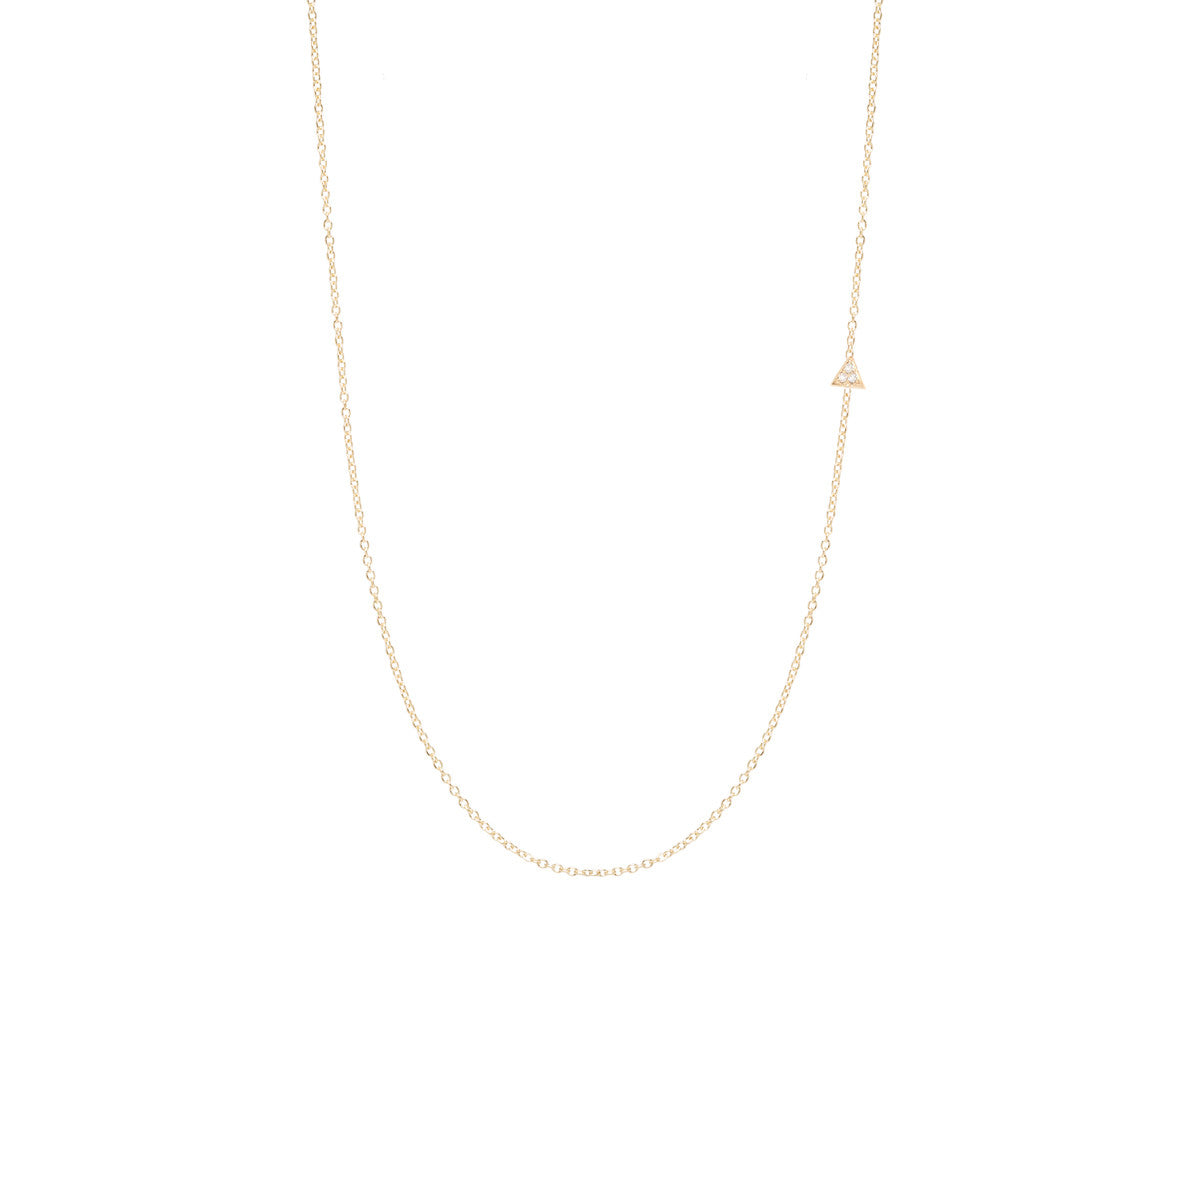 Zoë Chicco 14kt Yellow Gold Itty Bitty Off-Center Pave Triangle Necklace